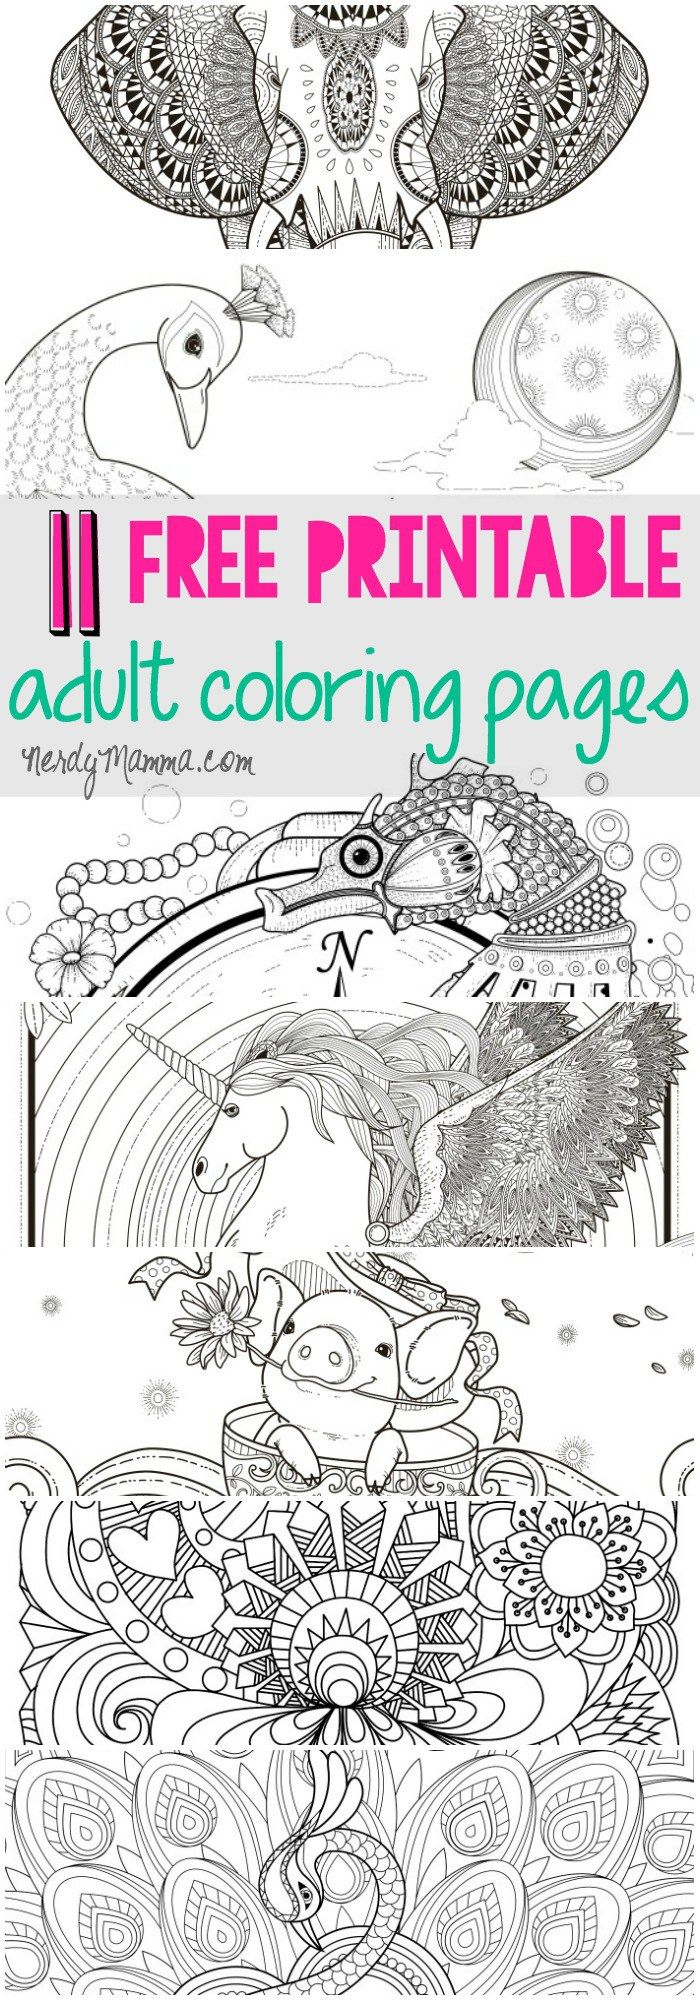 Coloring pages for down syndrome adults - 11 Free Printable Adult Coloring Pages